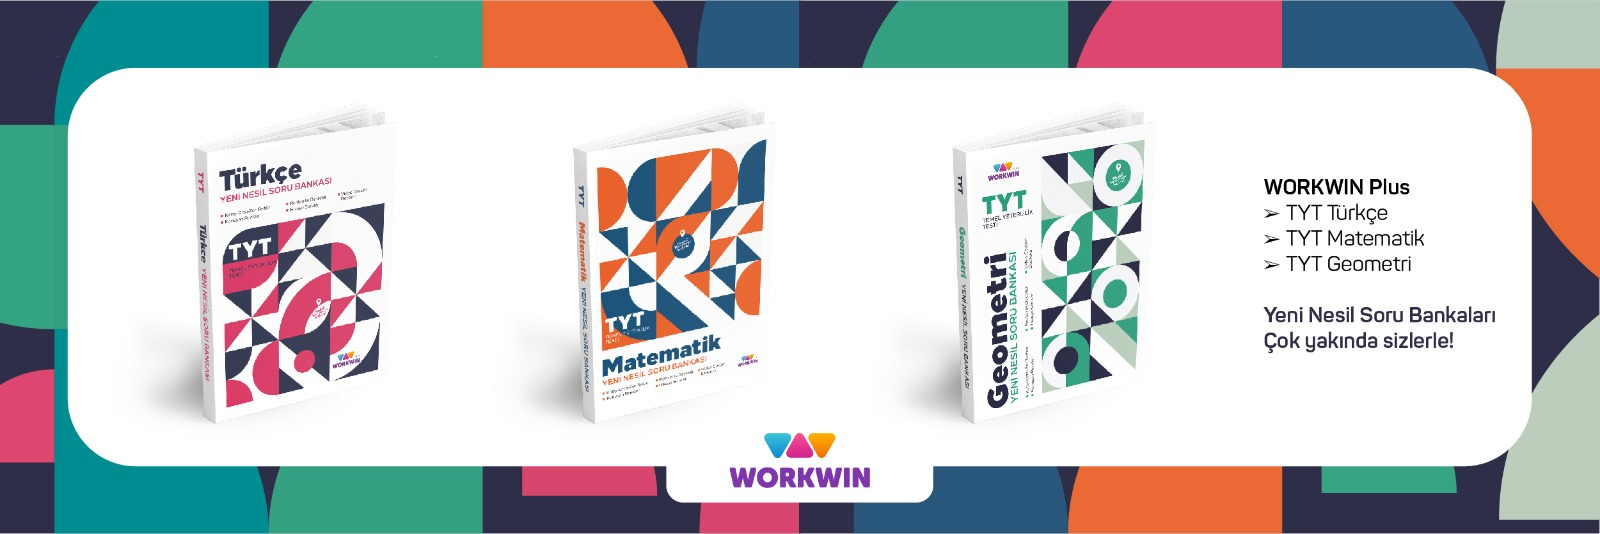 Workwin Plus TYT